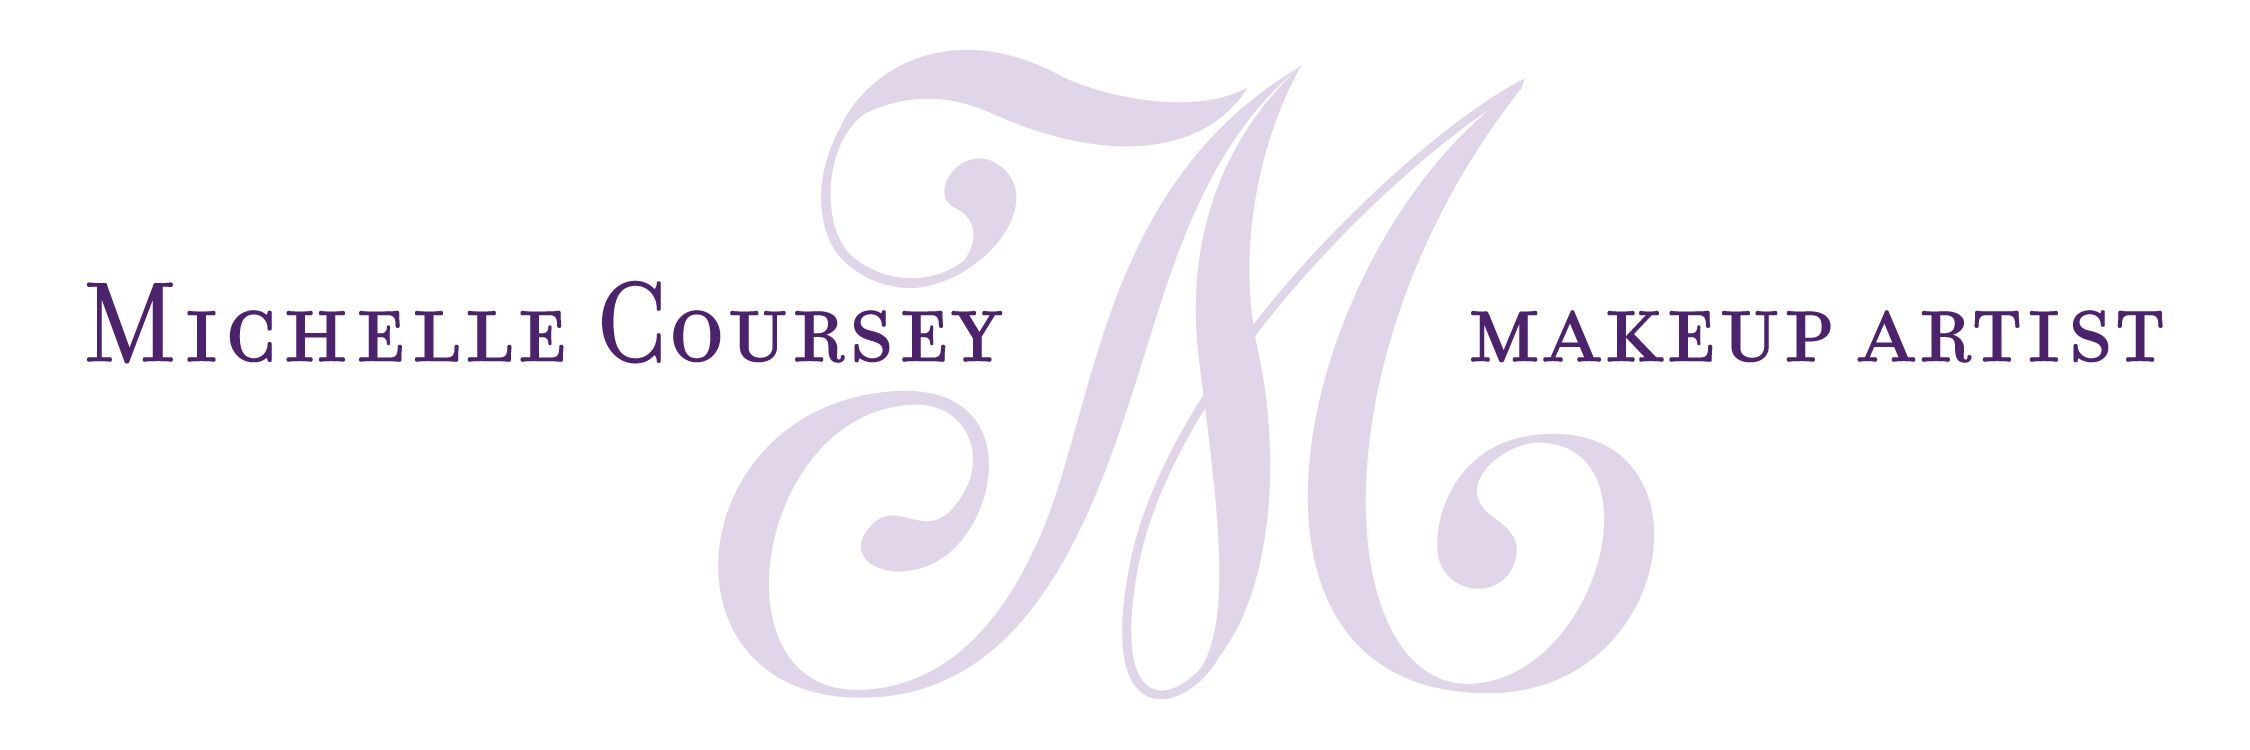 michellecoursey.com